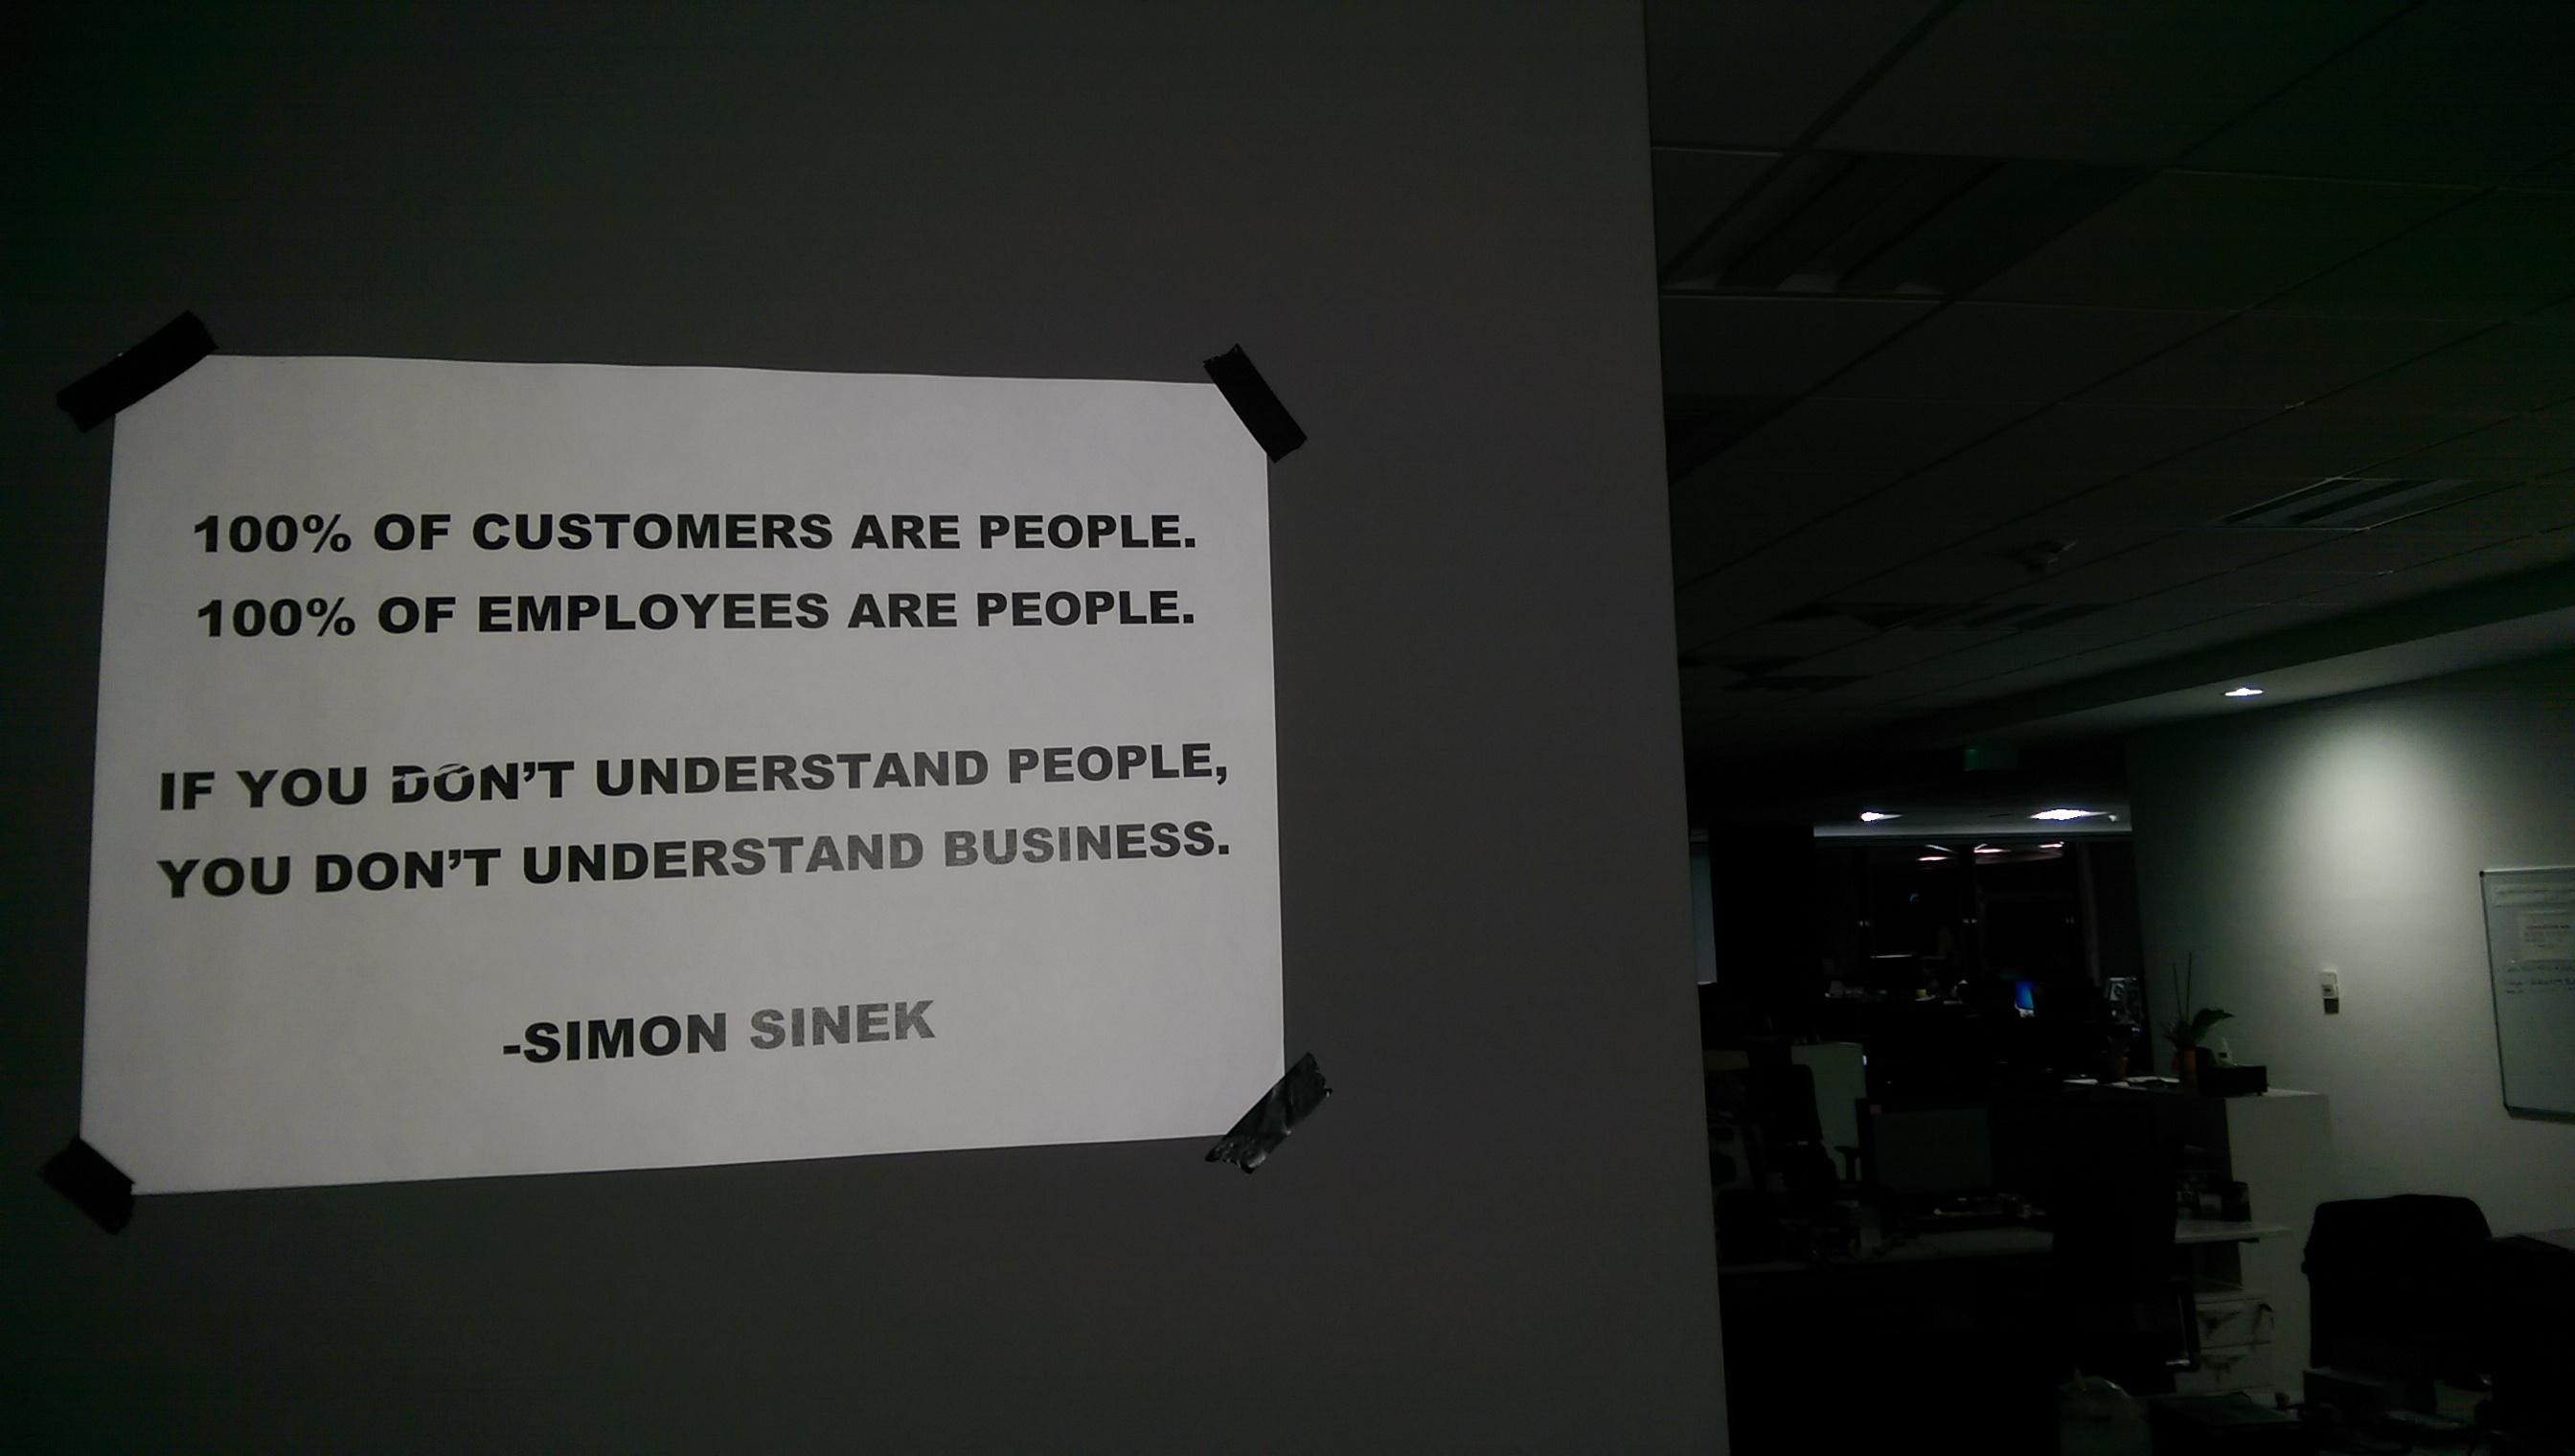 My Quote At The Workplace If You Dont Understand People You Don